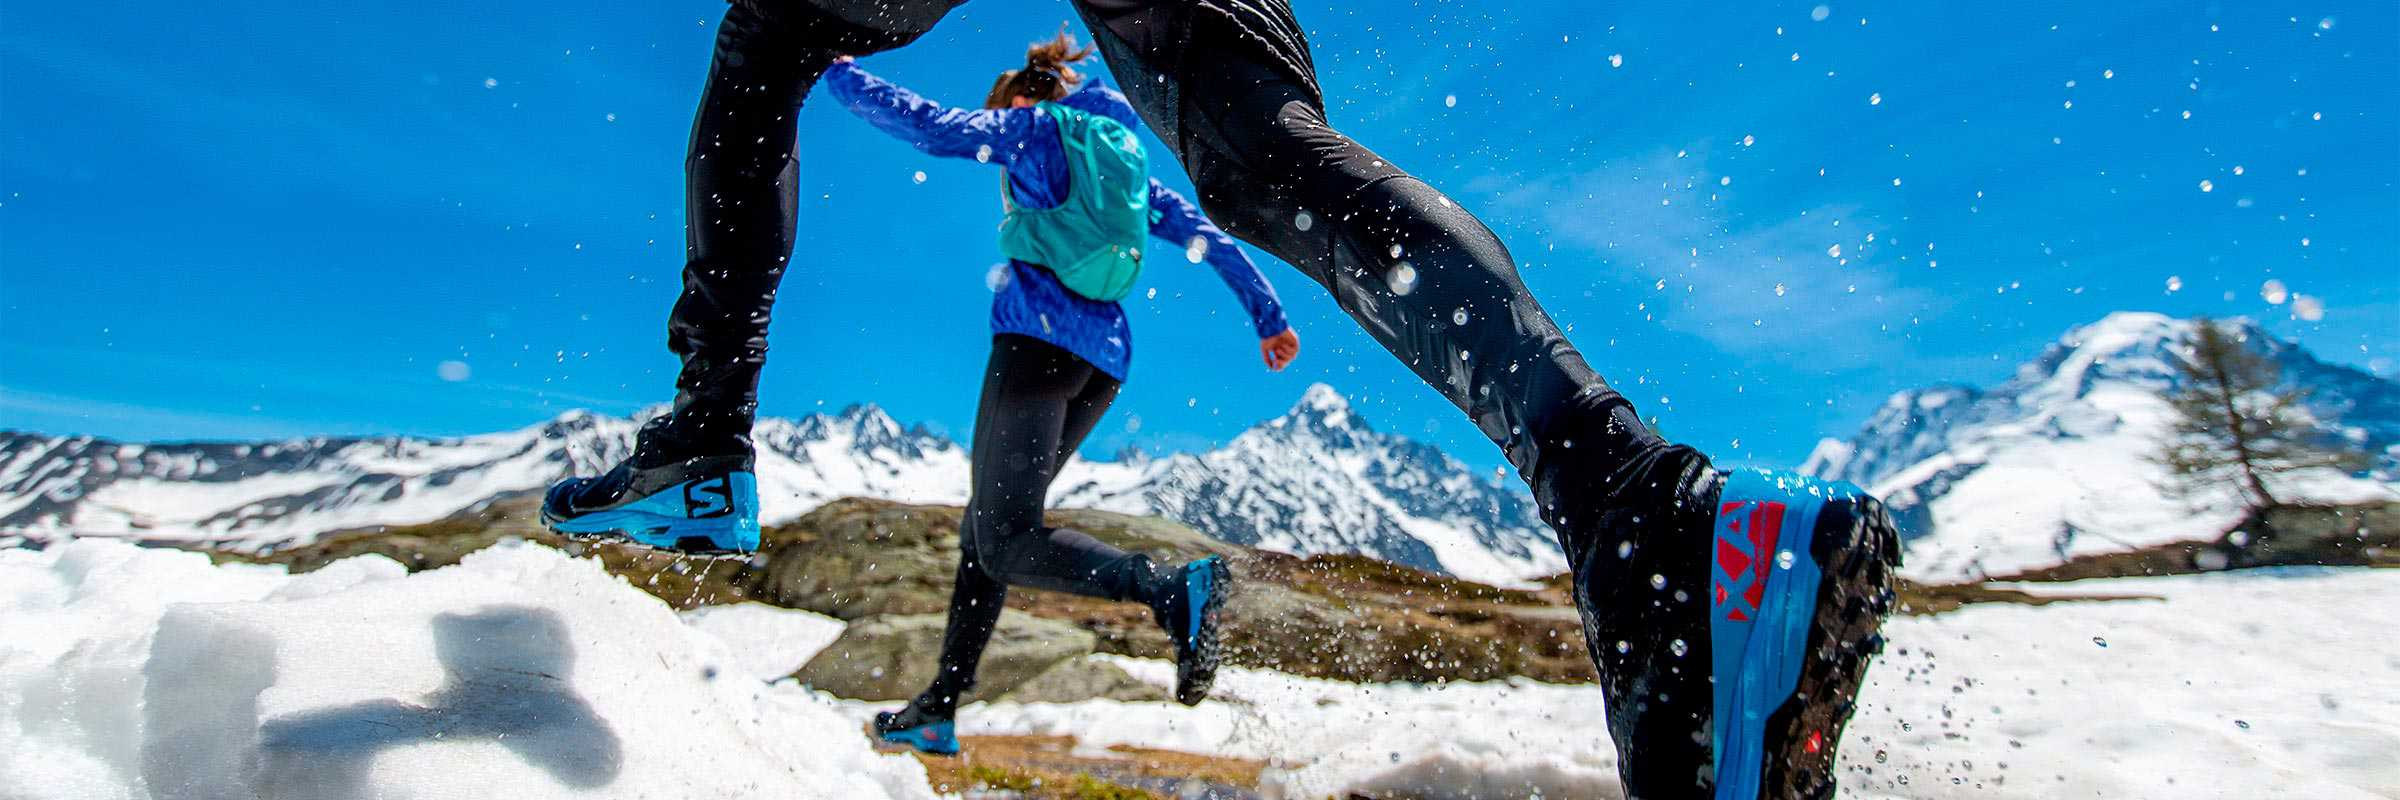 Best Winter Running Shoes Reviewed for 2021